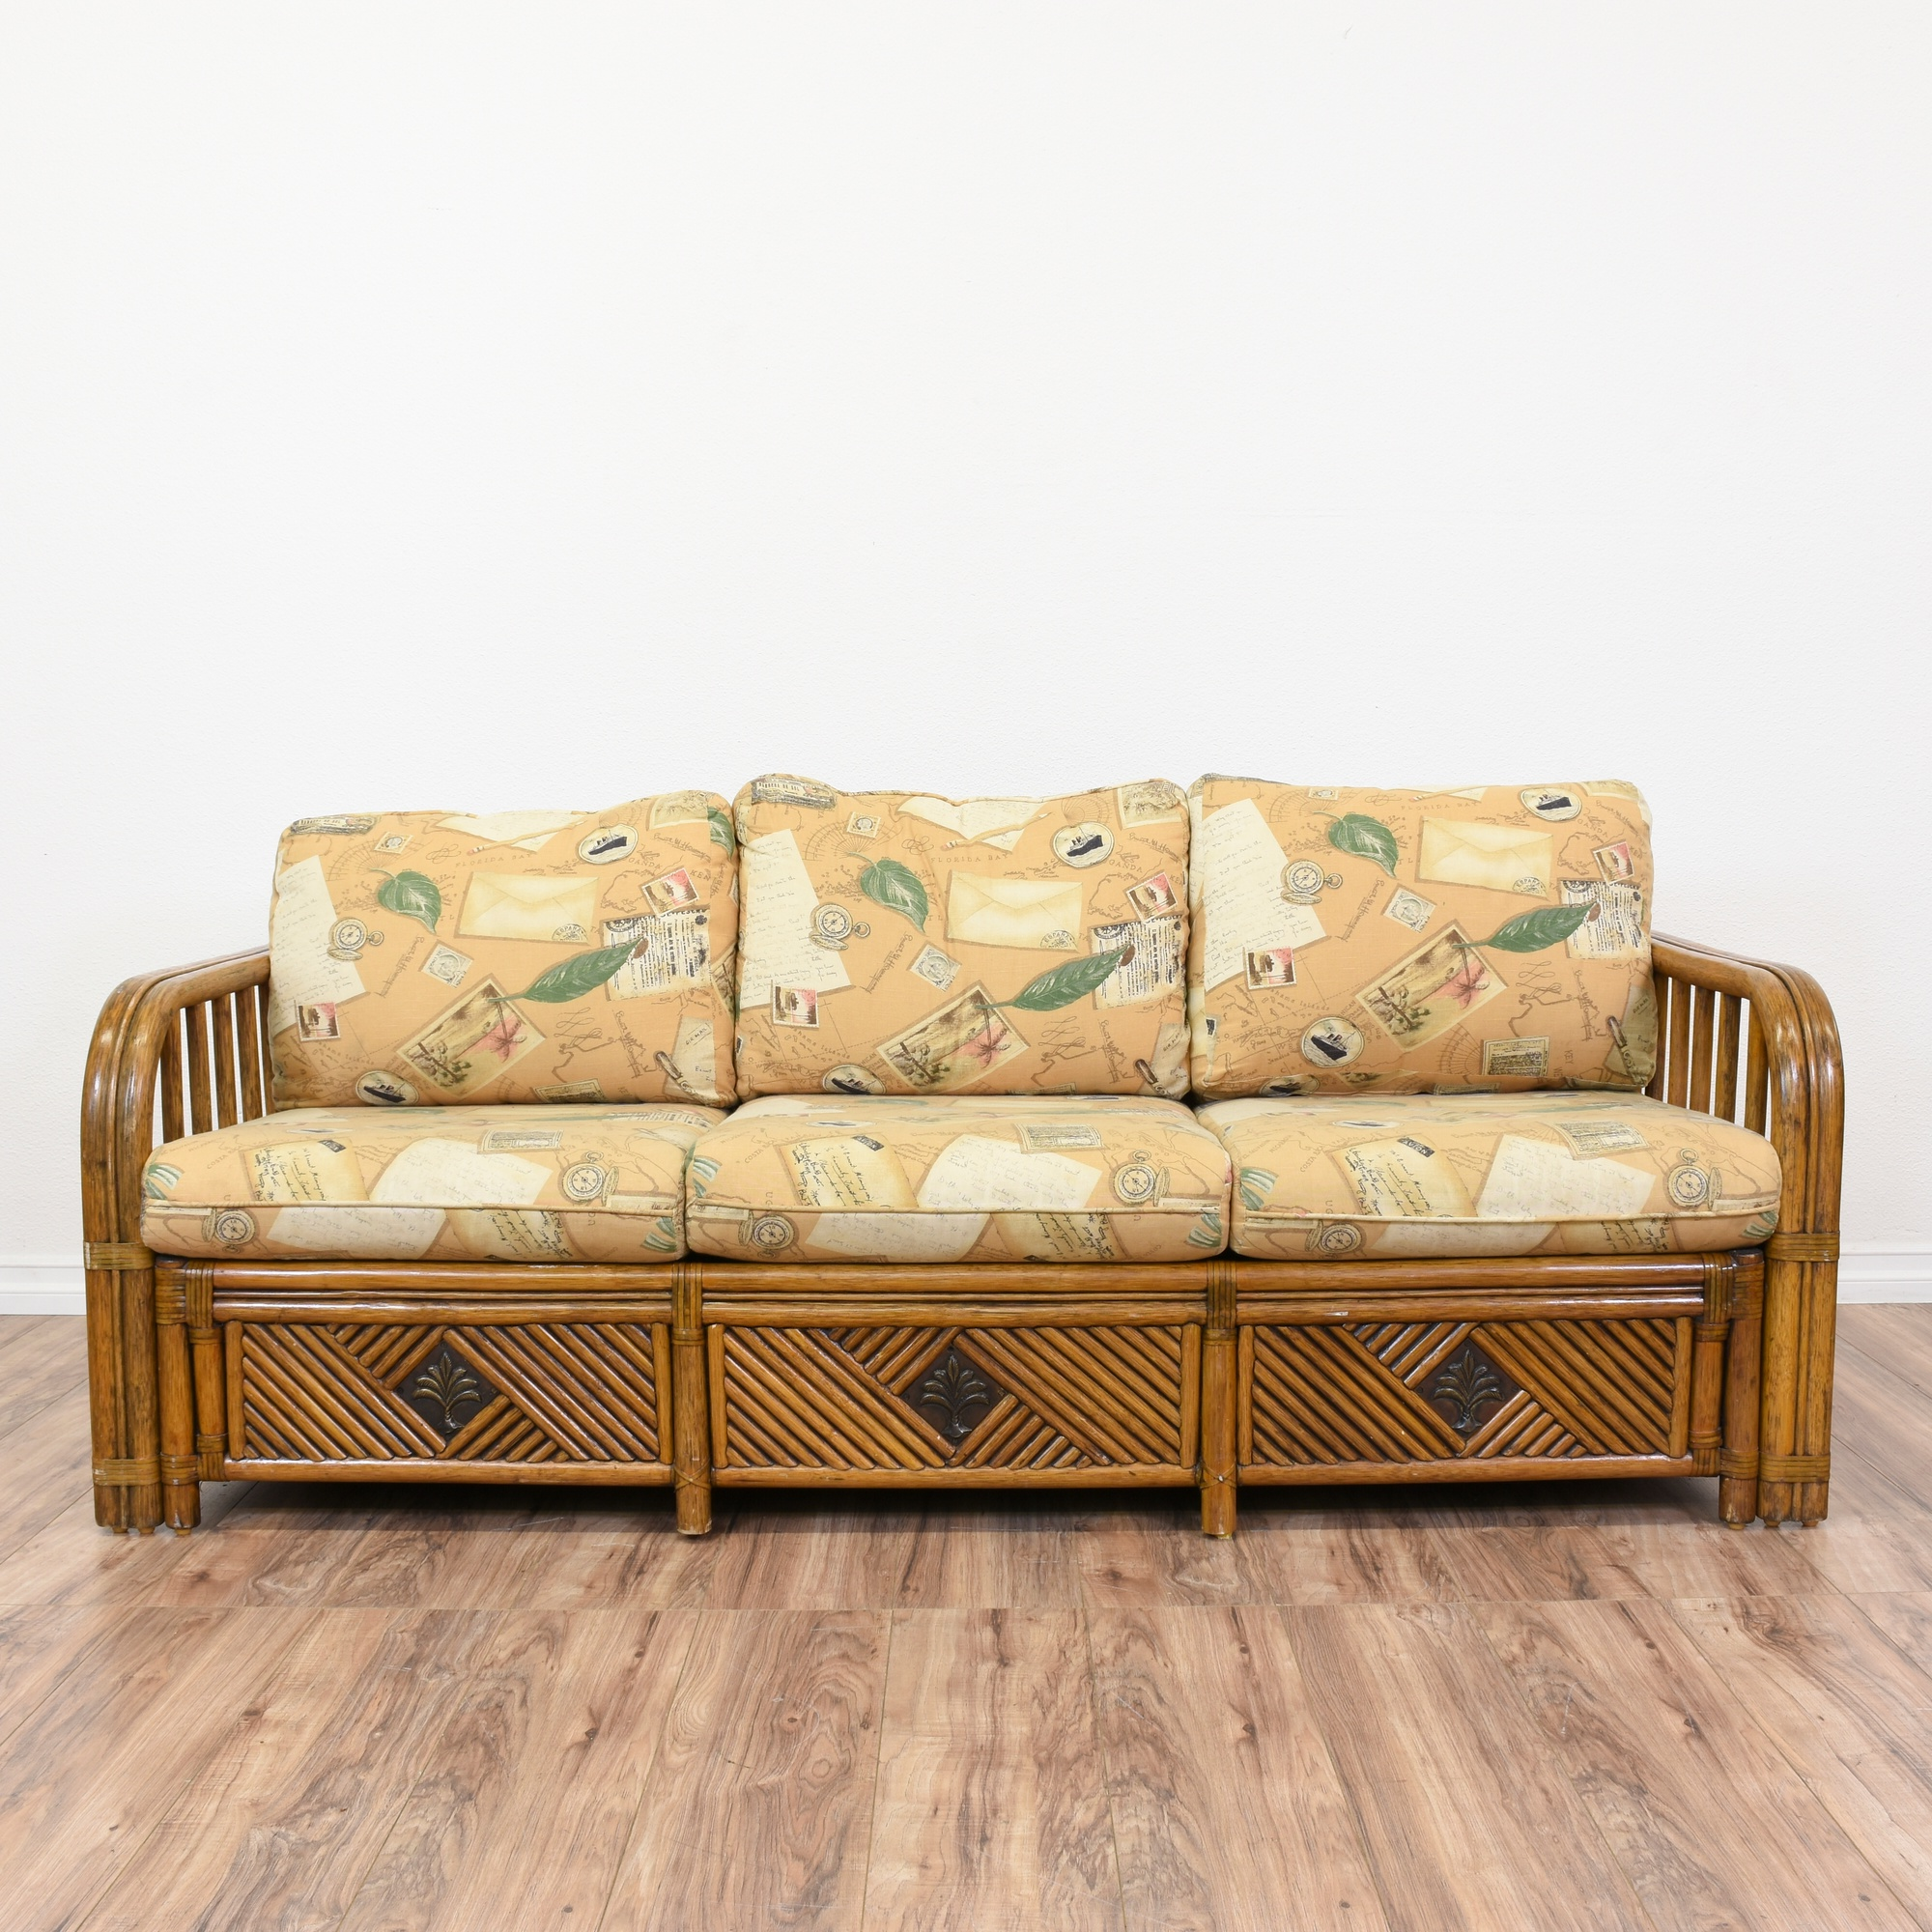 Tropical rattan sleeper sofa bed loveseat vintage furniture san diego los angeles Rattan loveseat